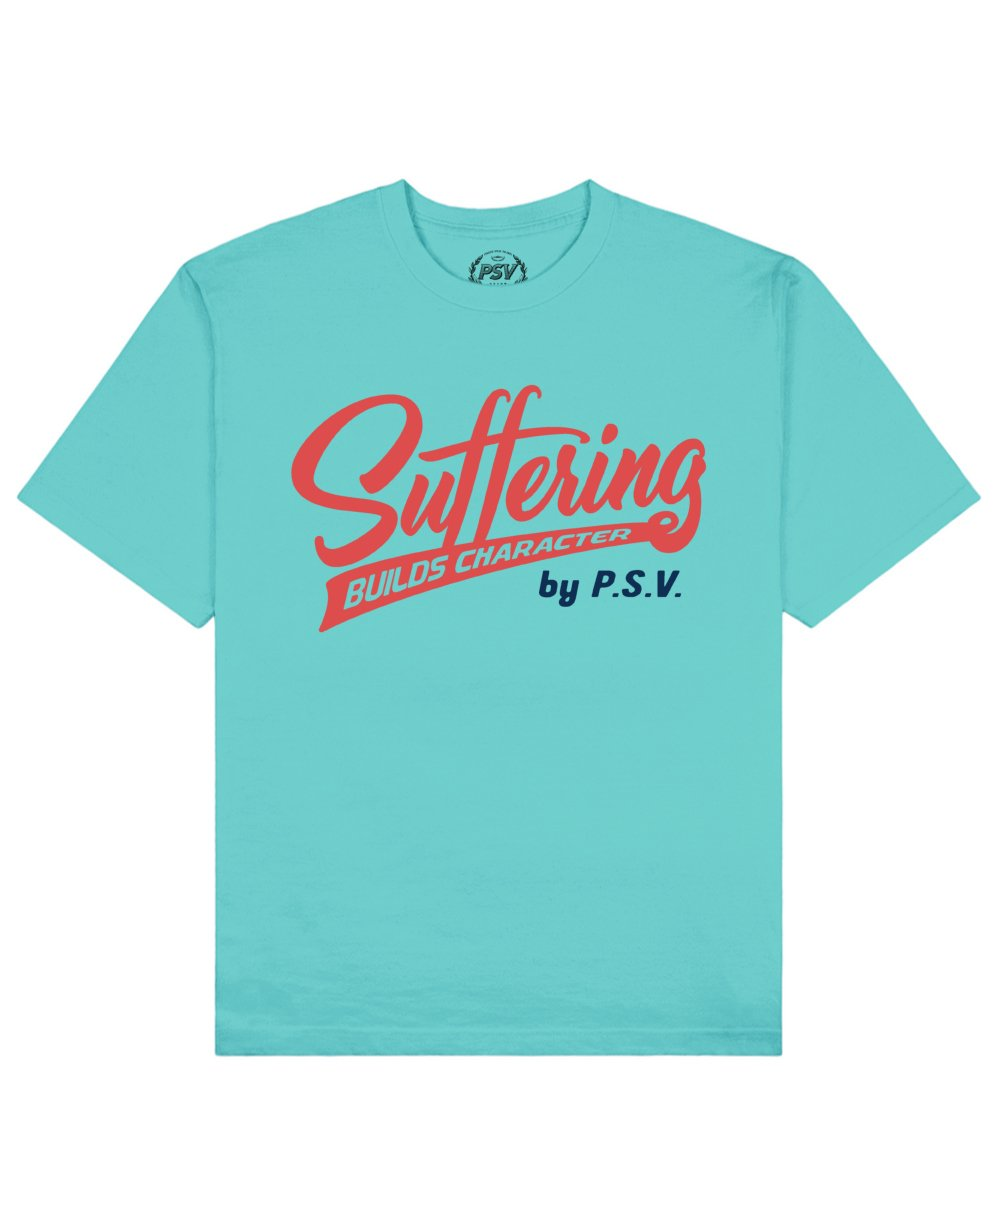 Suffering Builds Character Print T-Shirt in Aqua - T-Shirts - PSV - BRANMA